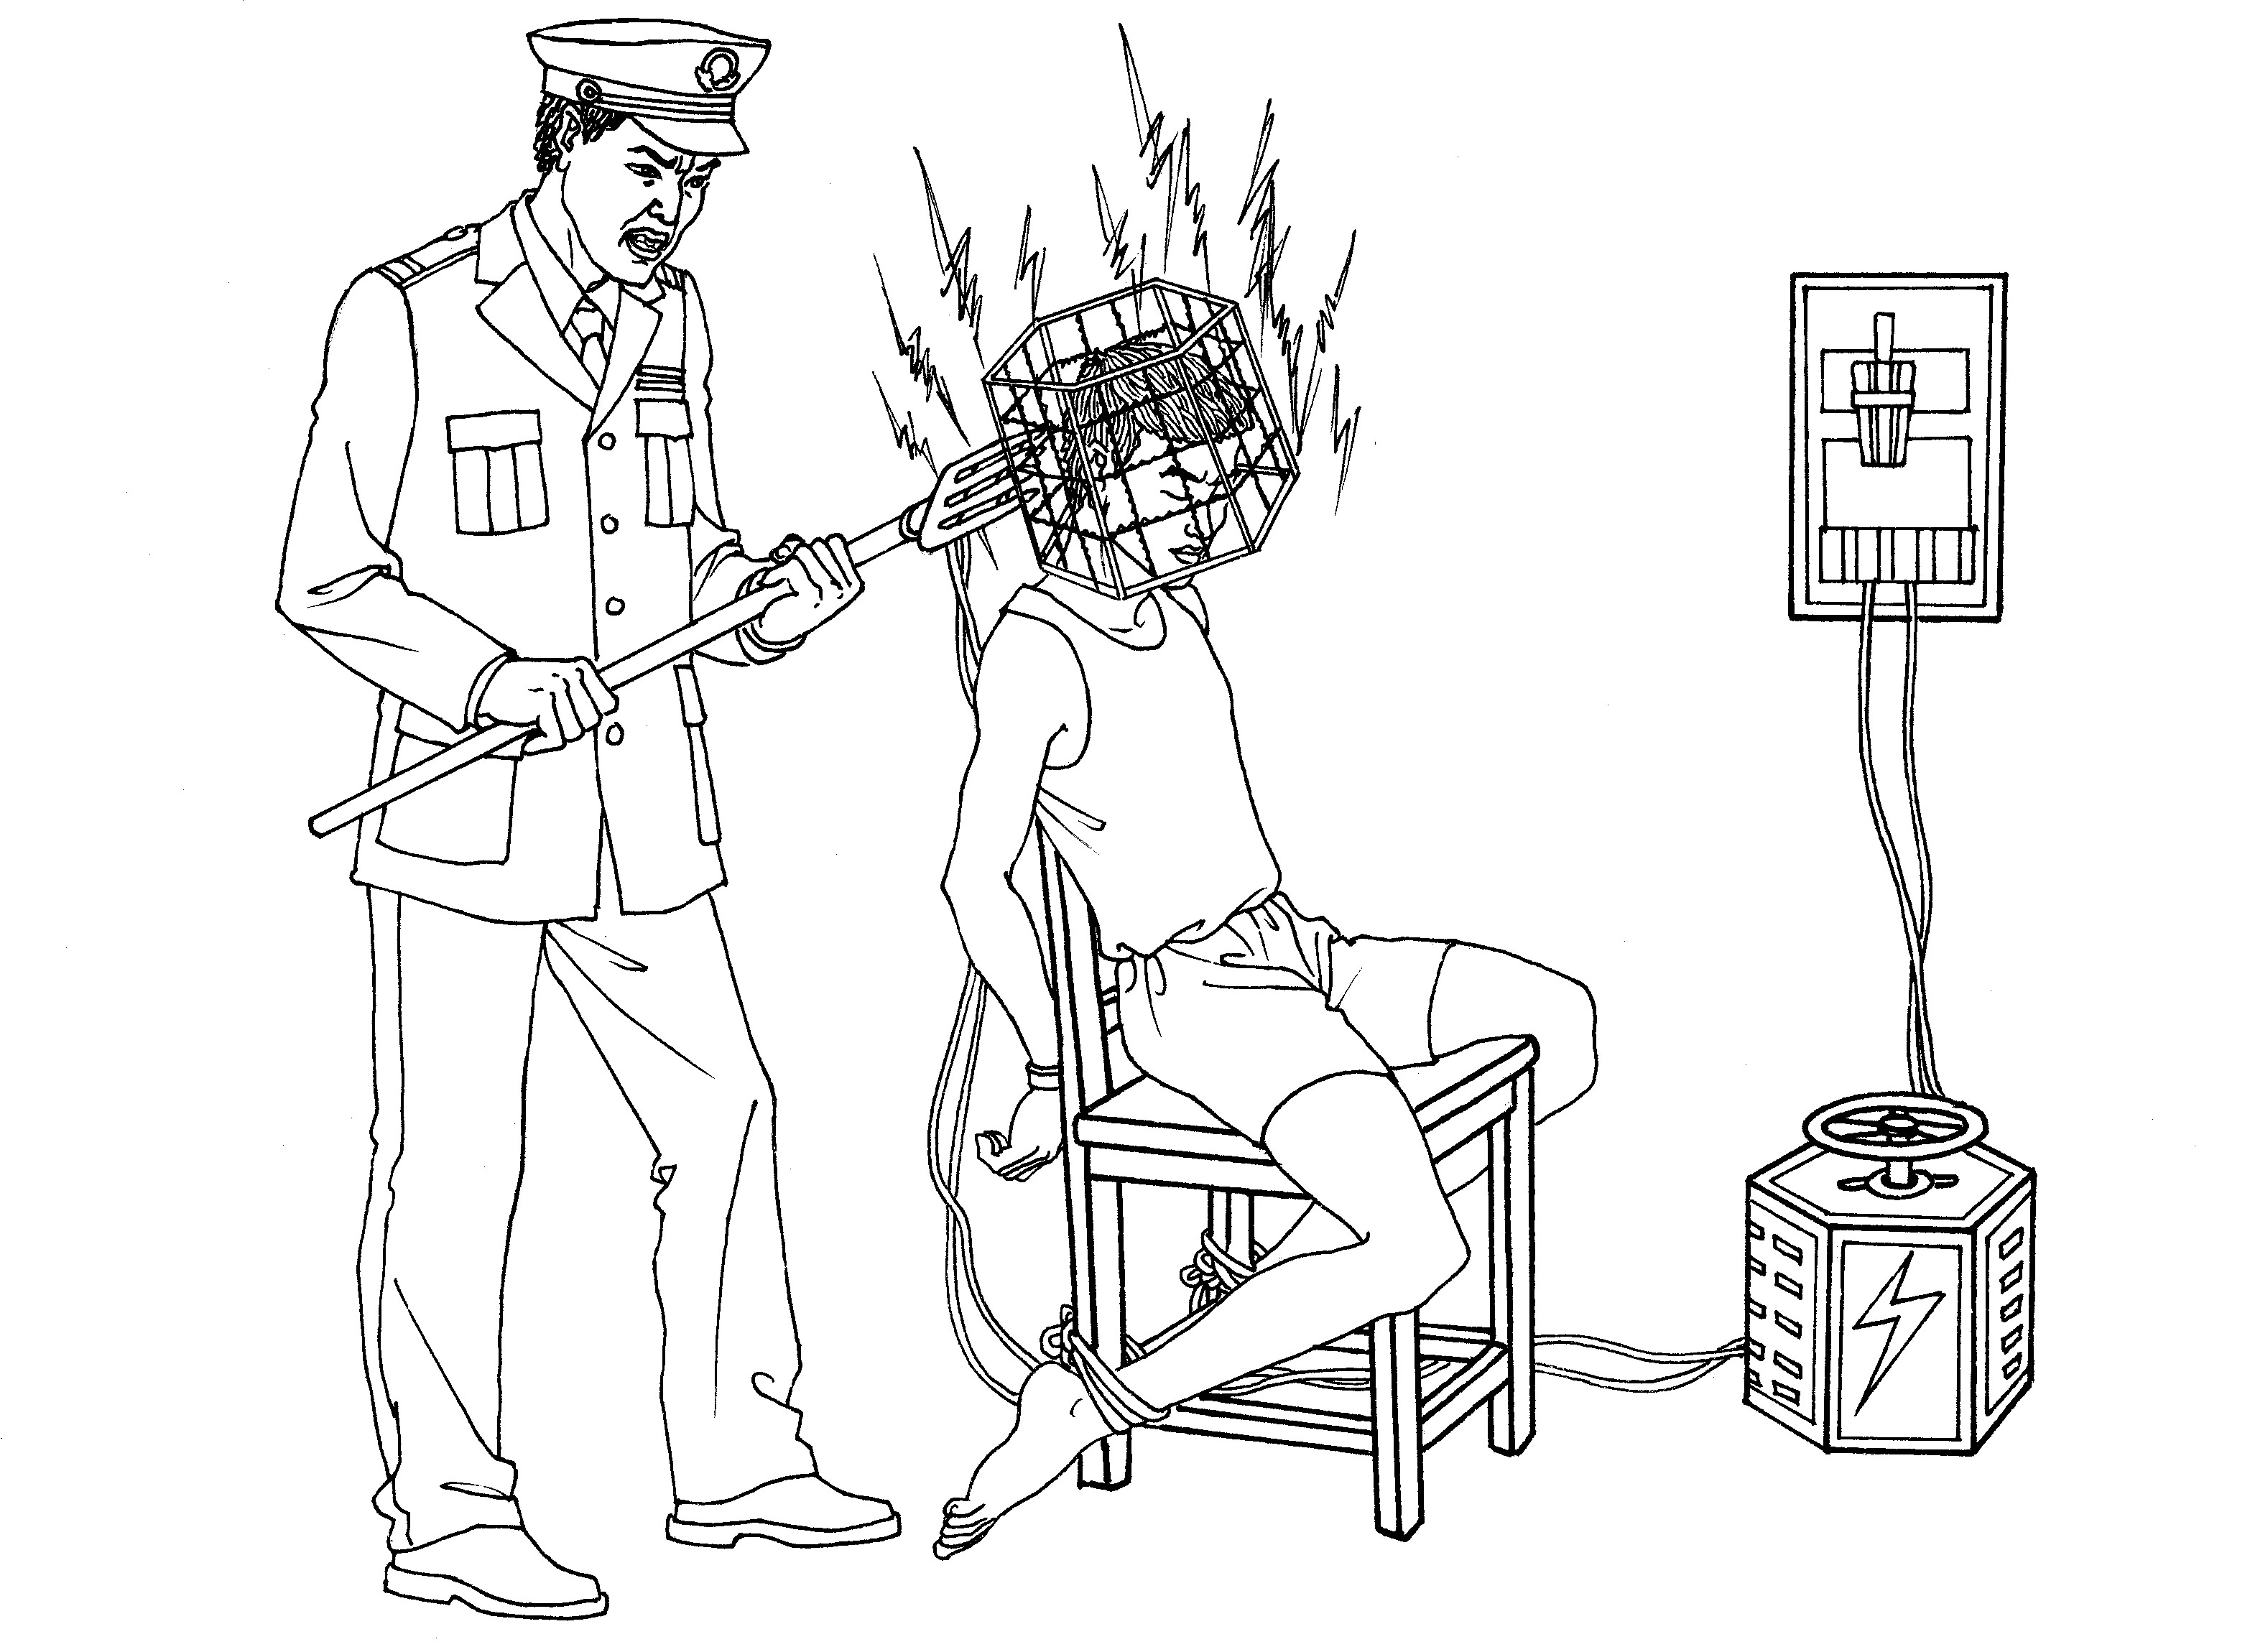 Illustrations Of Torture Methods Used To Persecute Falun